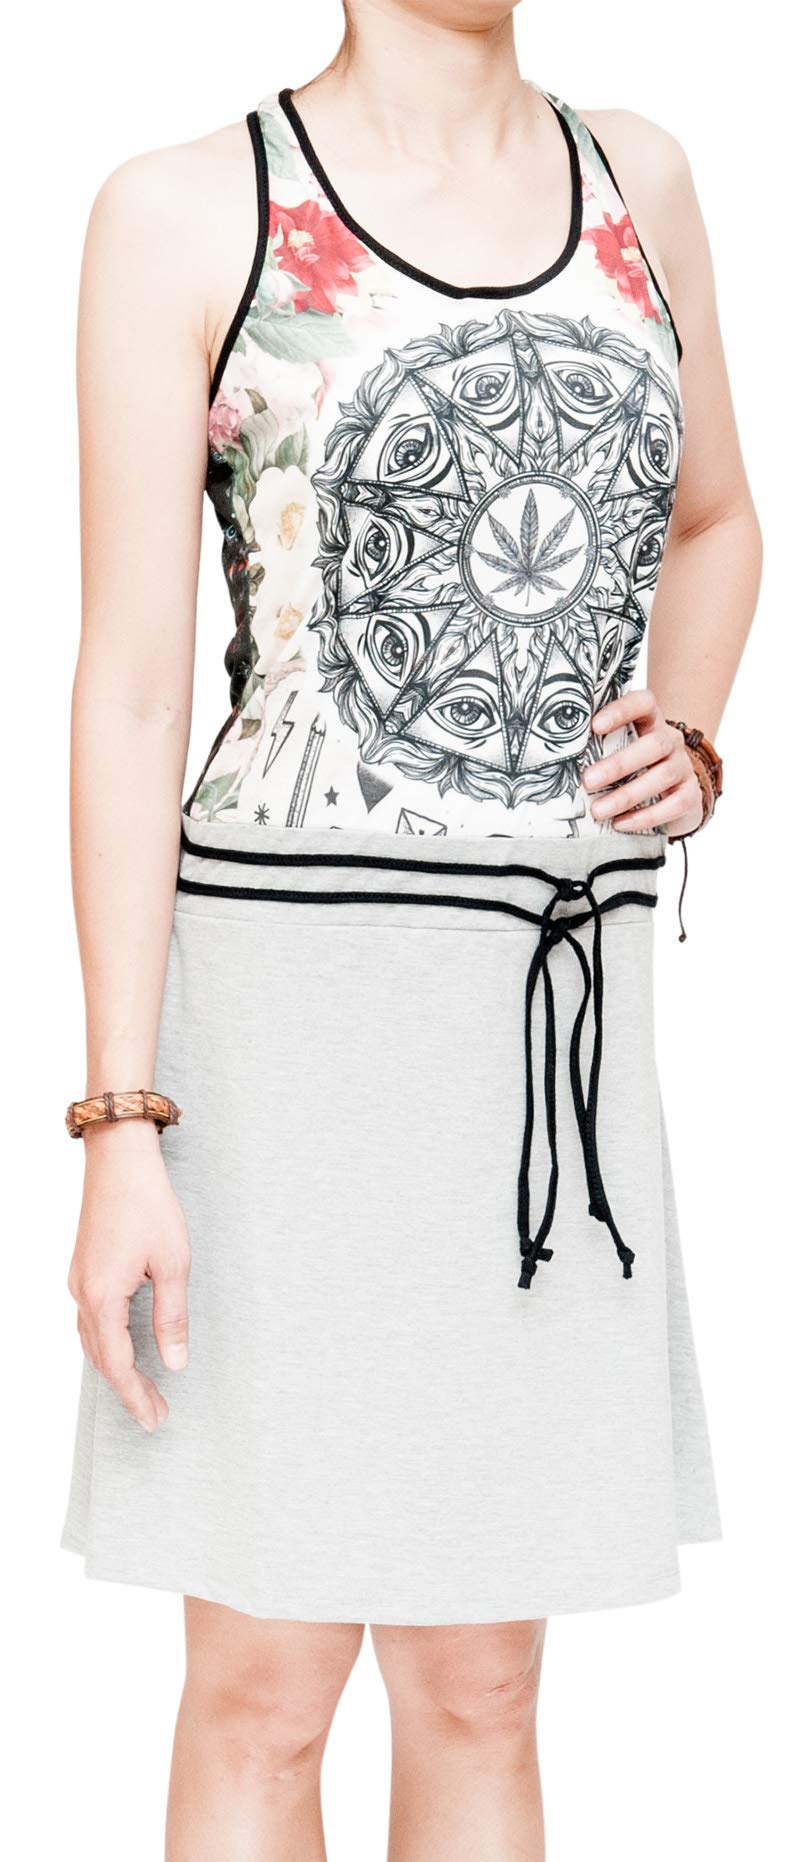 Healing Leaf Wisdom Eyes Mandala Hippie Summer Dress Gray